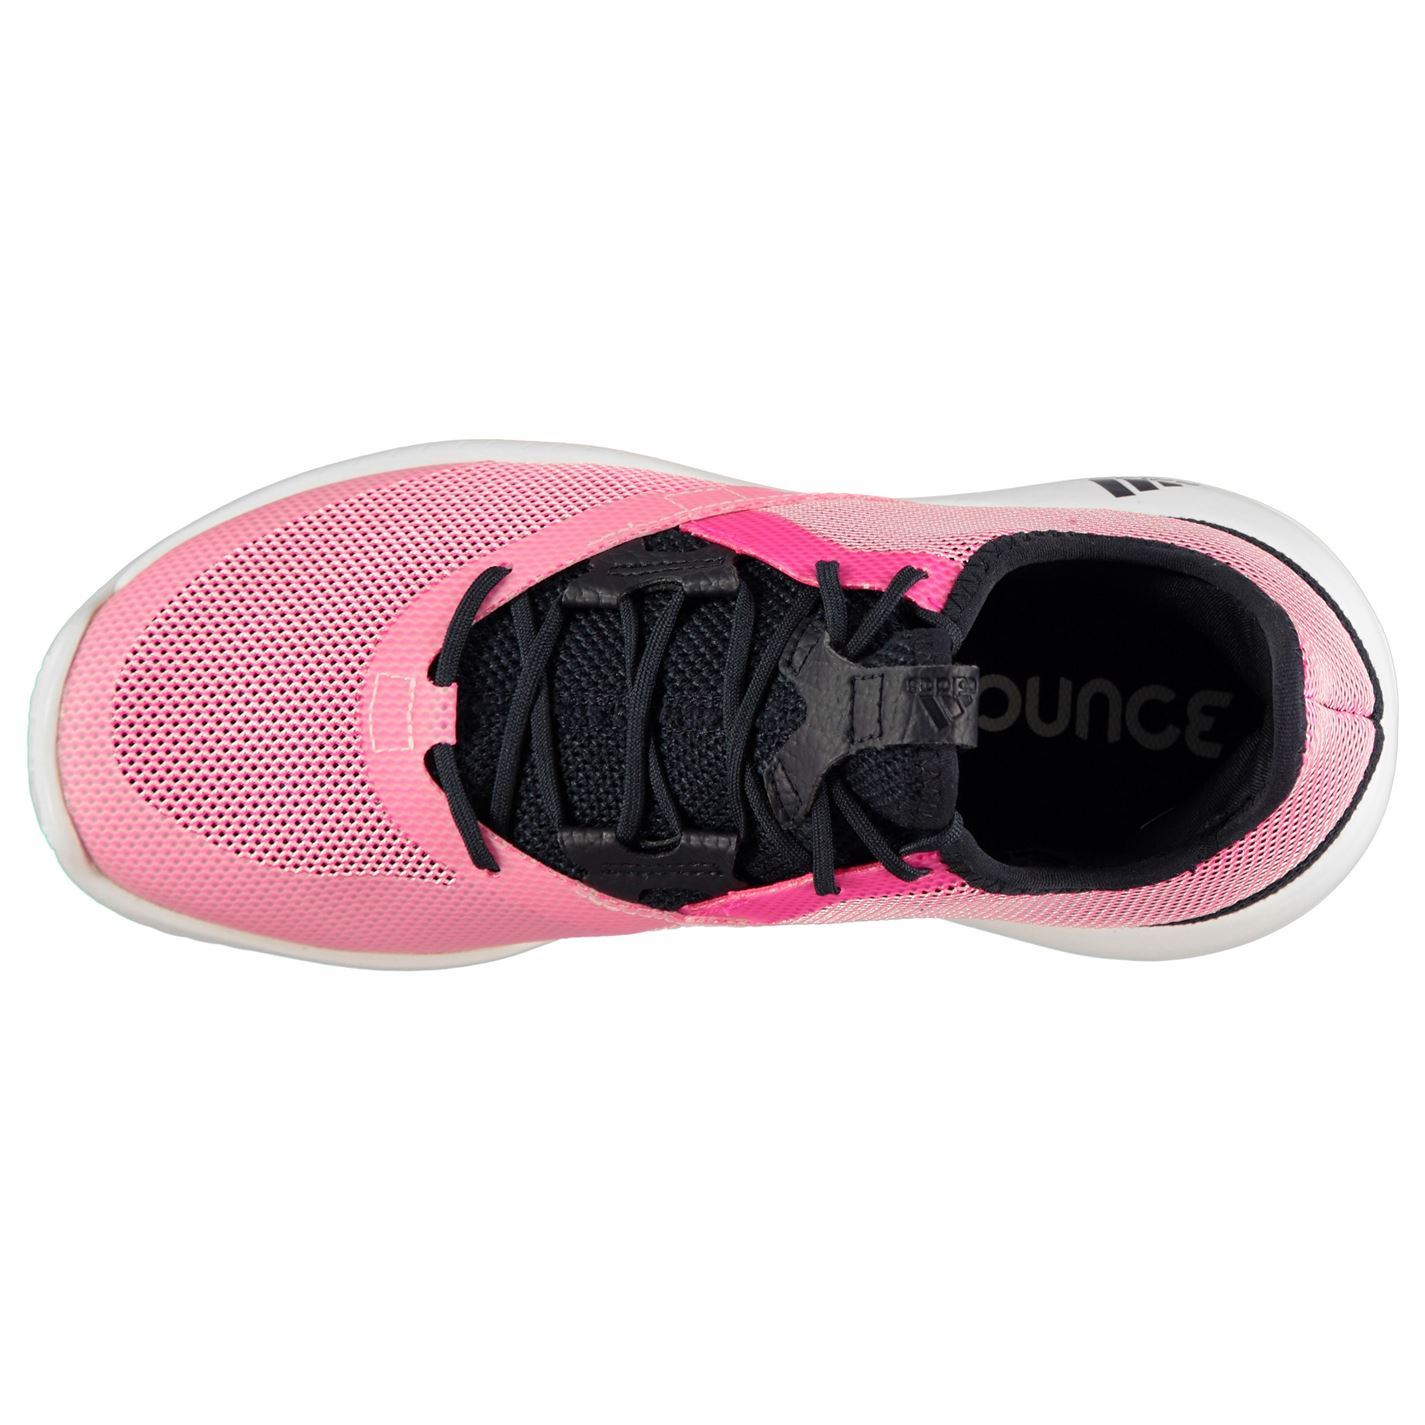 4a0a333754e45 ... adidas Adizero Defiant Bounce Tennis Shoes Womens Pink Trainers Sneakers